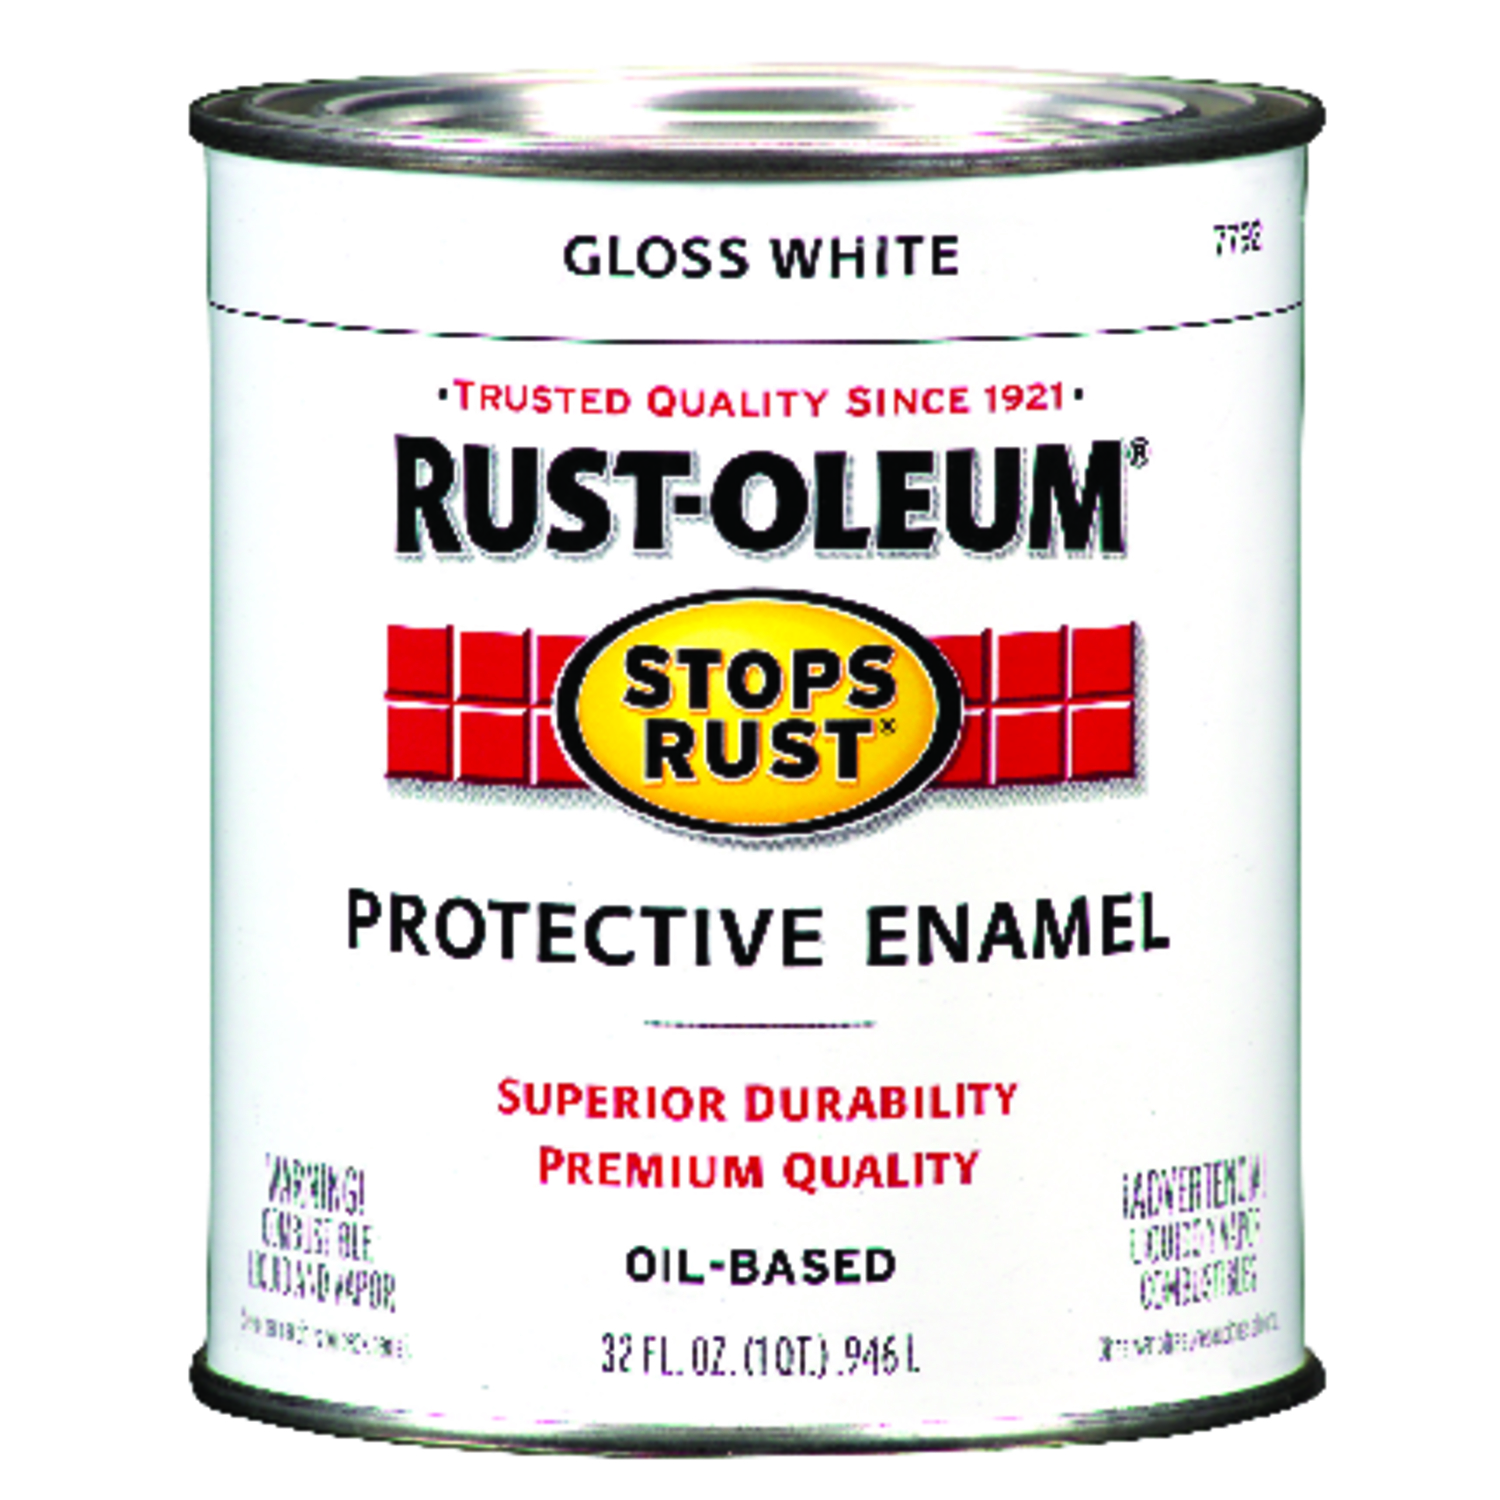 Rust-Oleum  Indoor and Outdoor  White  1 qt. Protective Enamel  Gloss